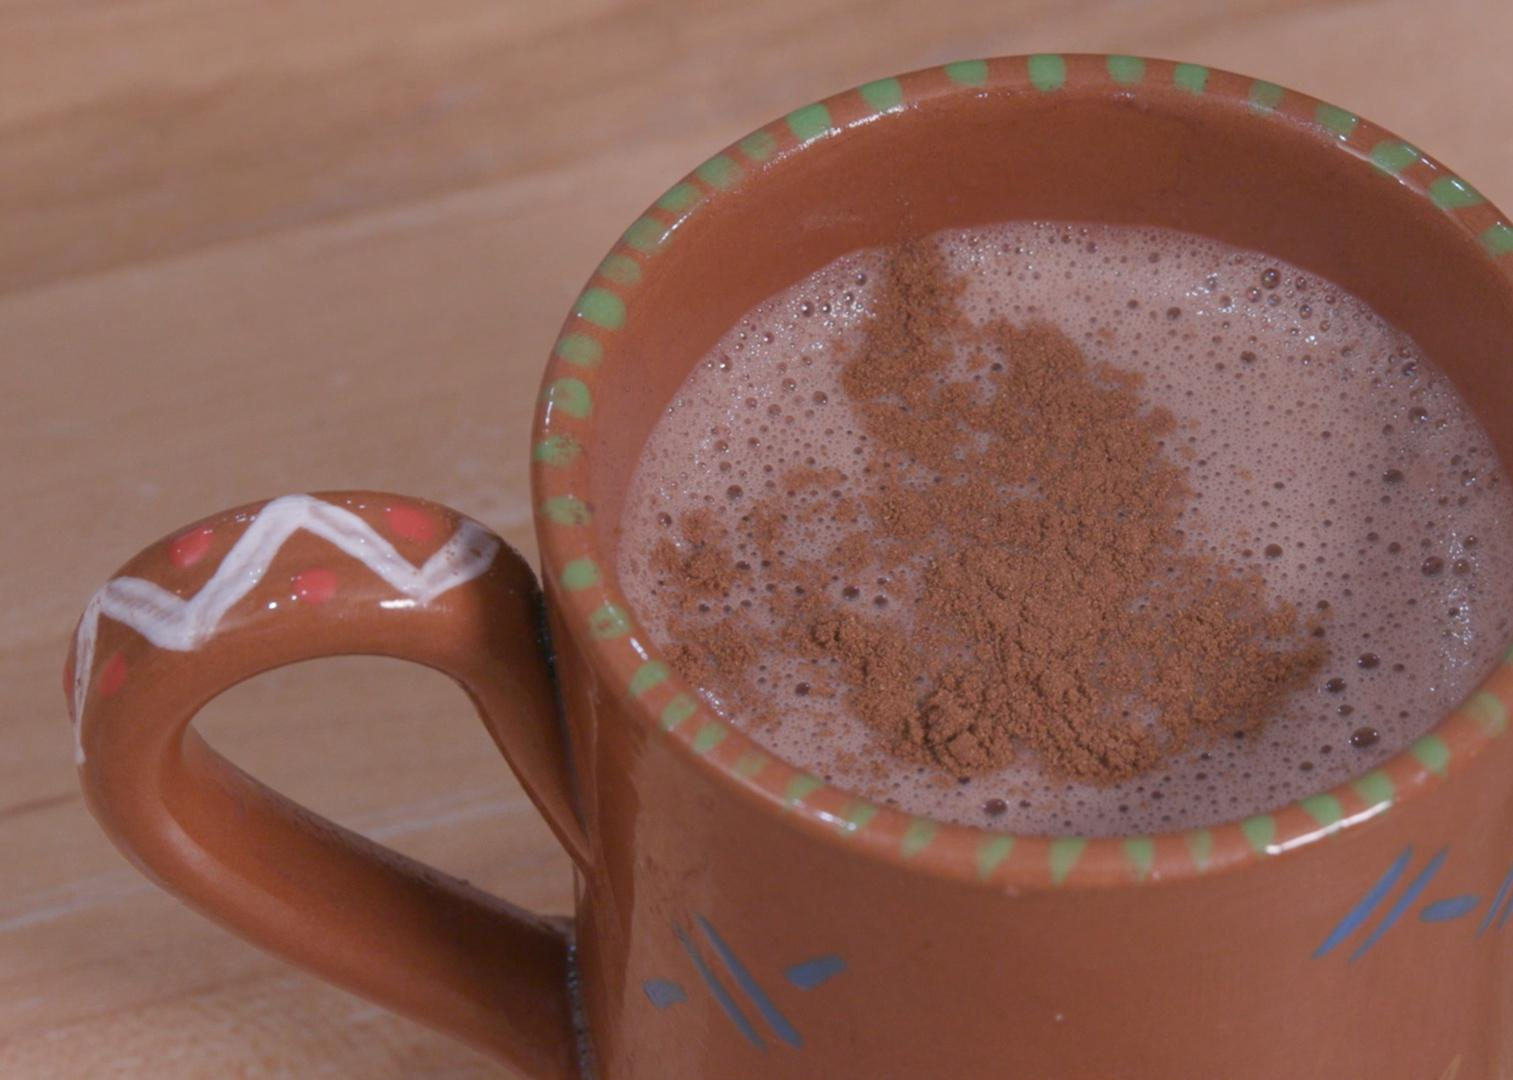 Hot cocoa sprinkled with cinnamon in a terra cotta mug